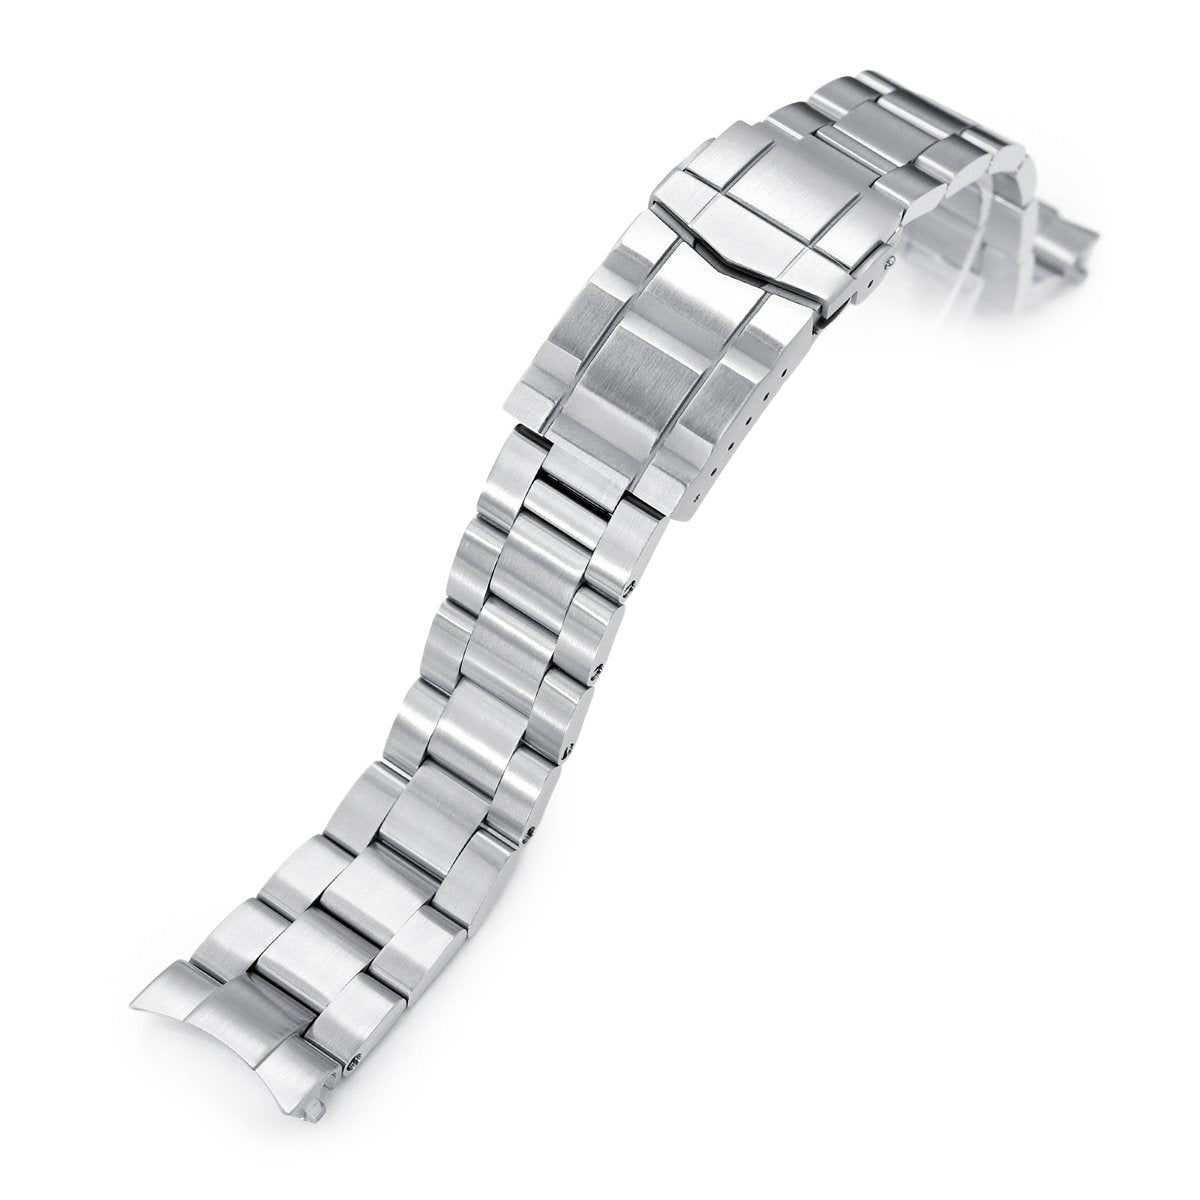 20mm Super-O Boyer 316L Stainless Steel Watch Bracelet for Seiko Cocktail SSA345 SUB Clasp Brushed Strapcode Watch Bands